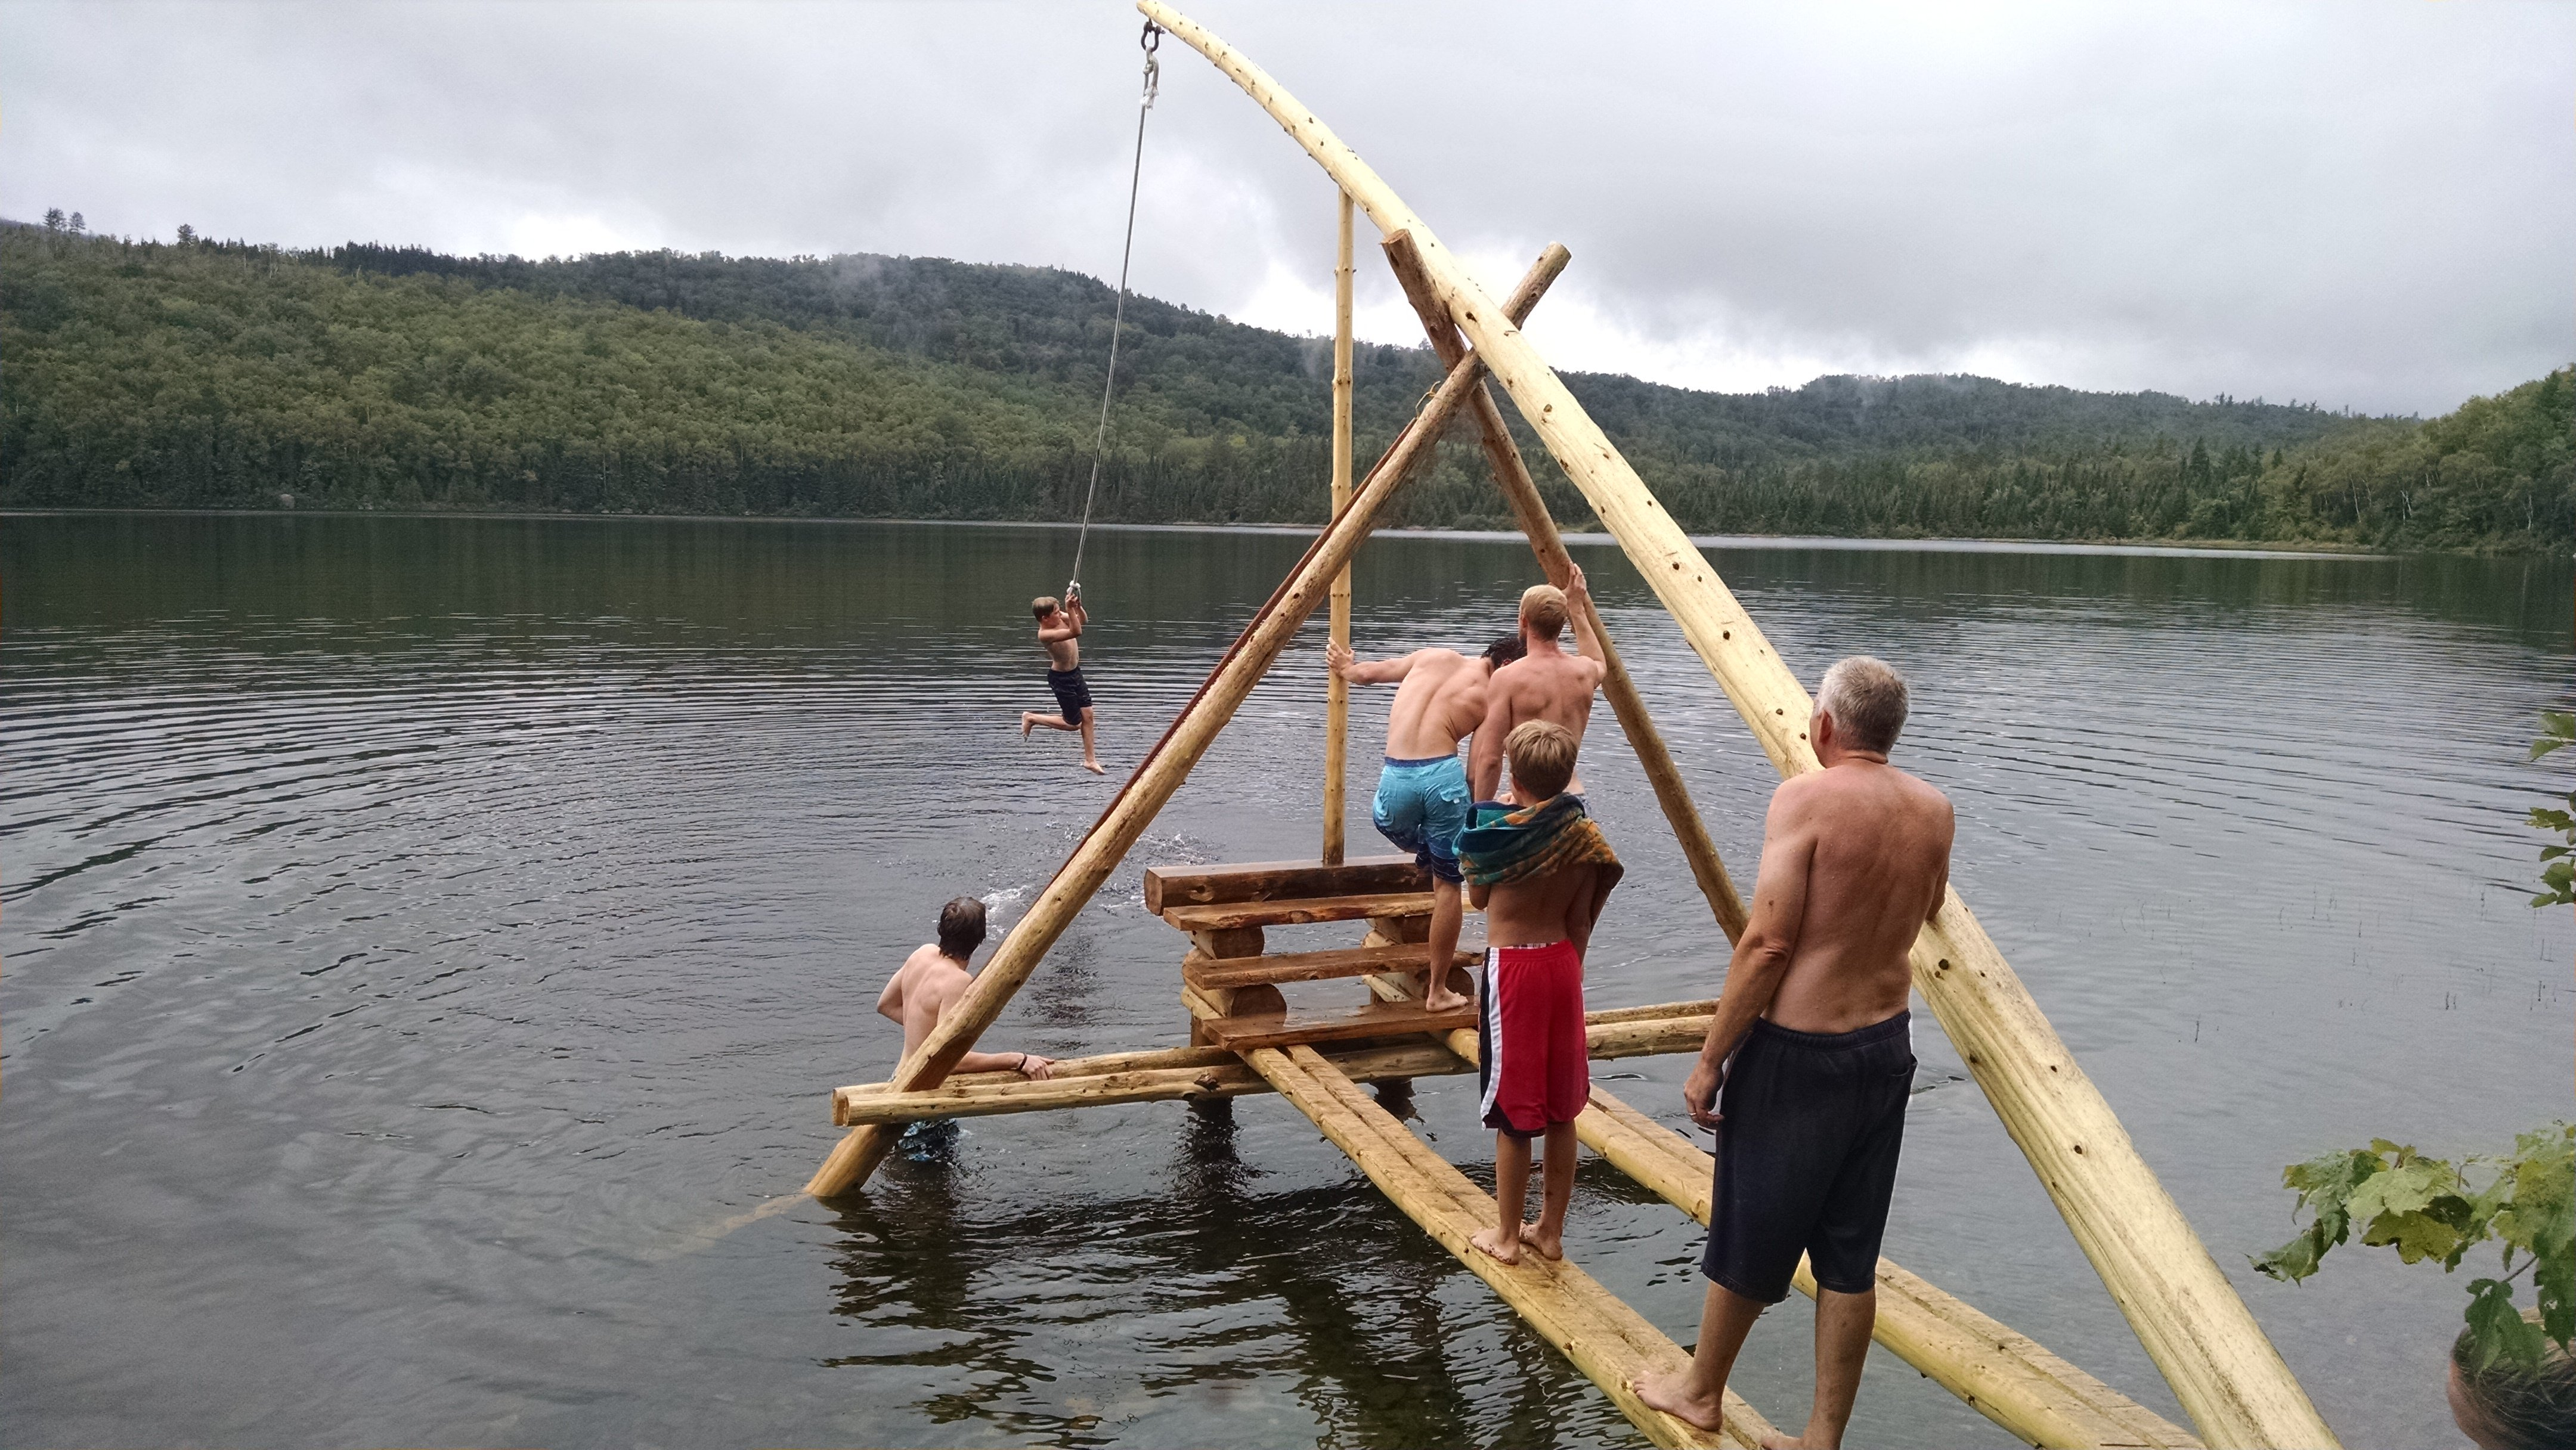 """Check our new """"Tarzan"""" swing off of your bucket list this summer!"""